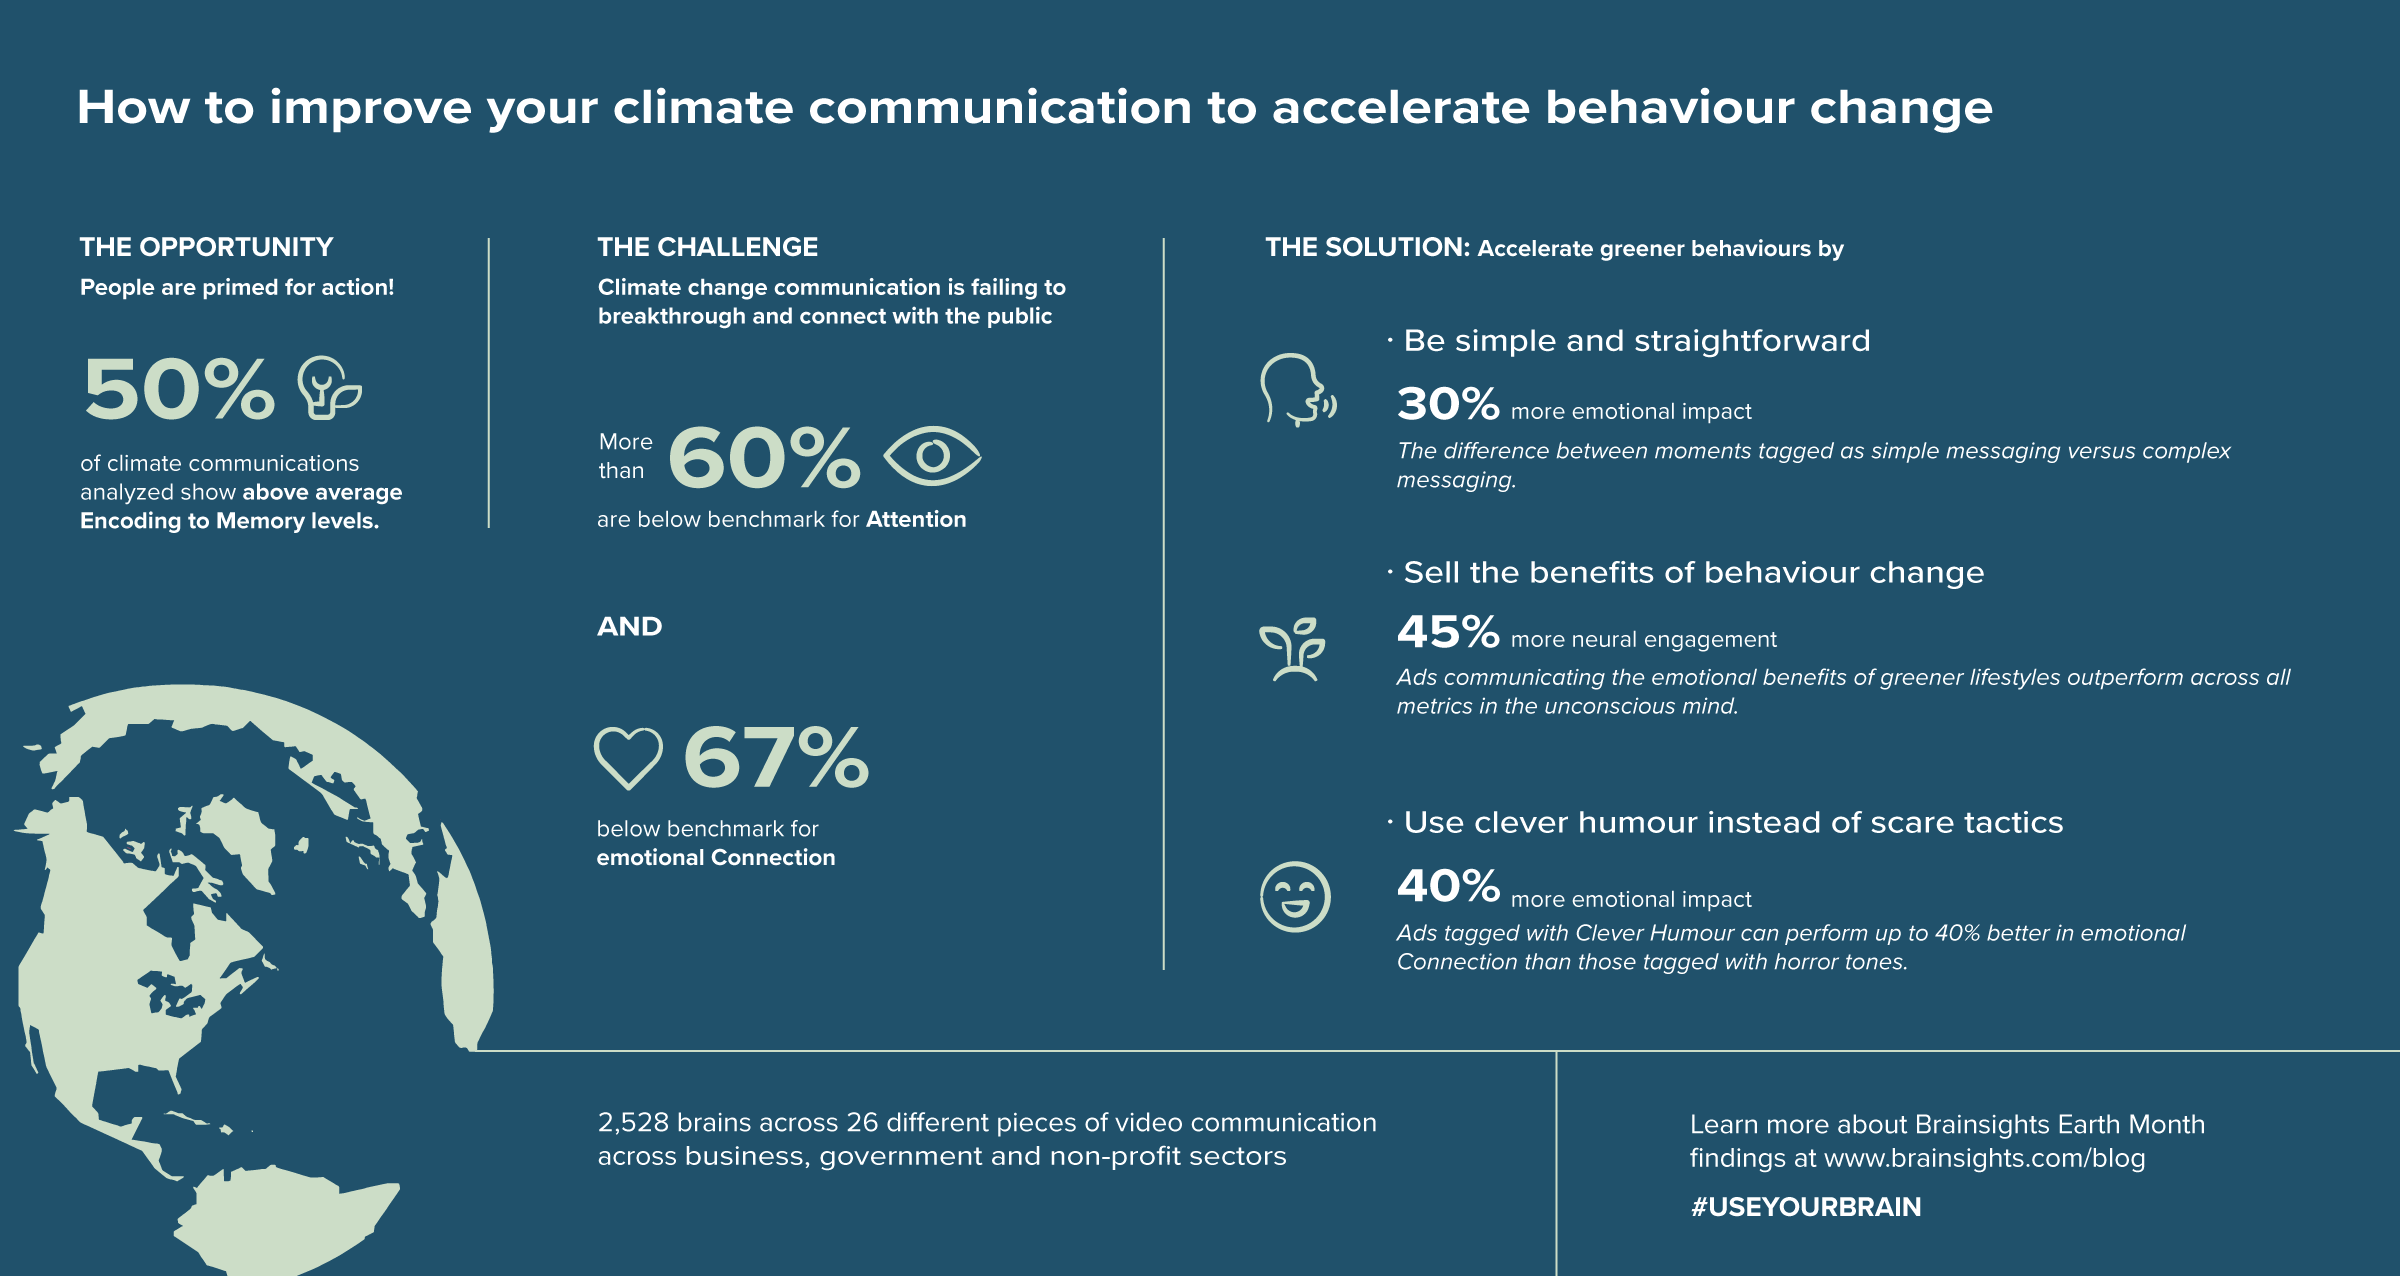 Our Earth Month infographic summarizes the key insights from our environmental communication analysis (April 2019)